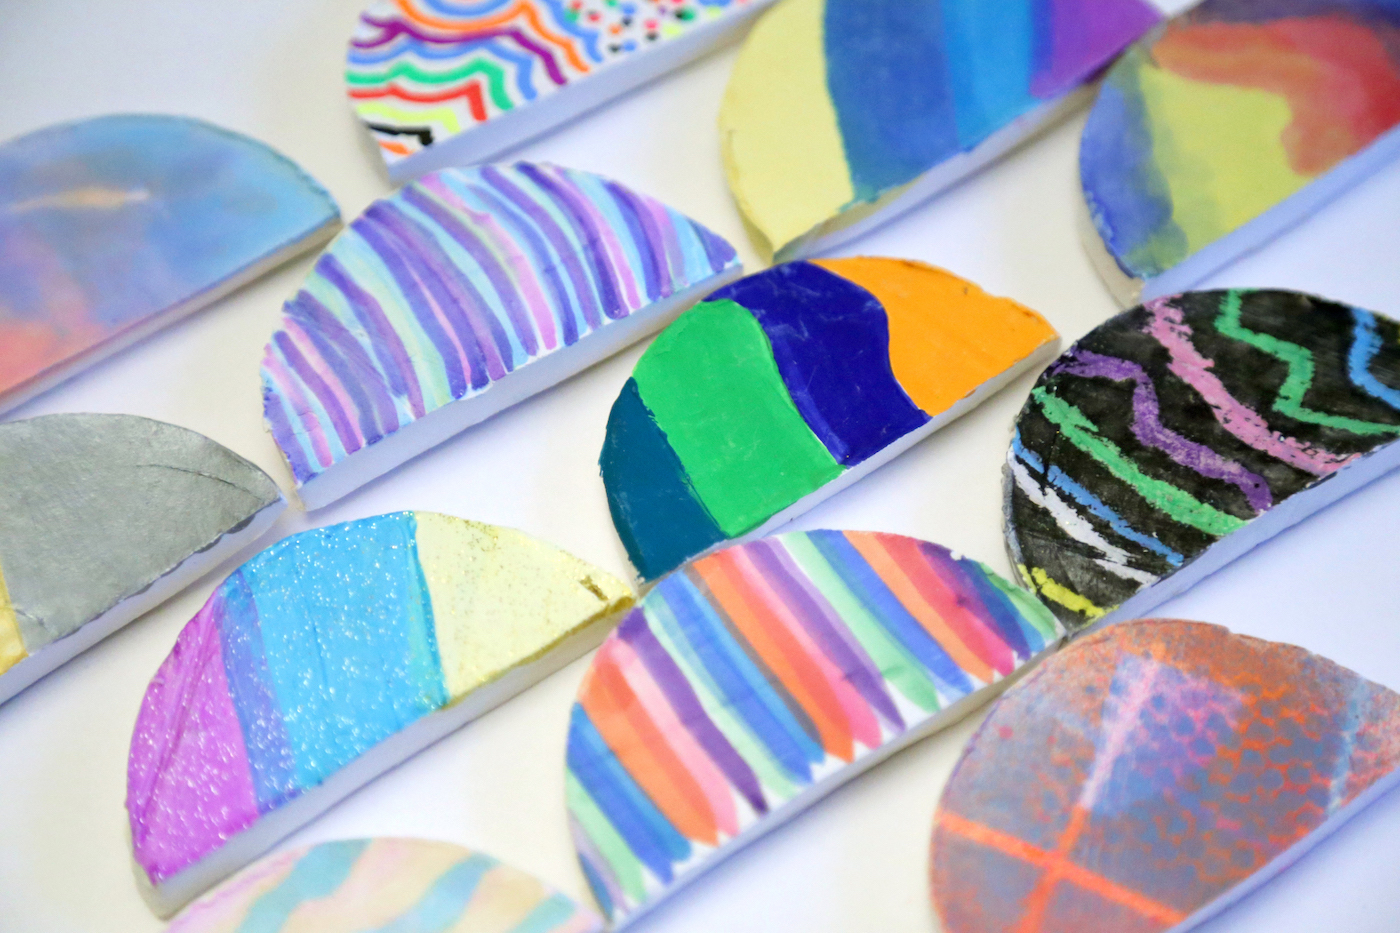 Forget Glazing 15 Other Innovative Ways To Add Color To Clay The Art Of Education University